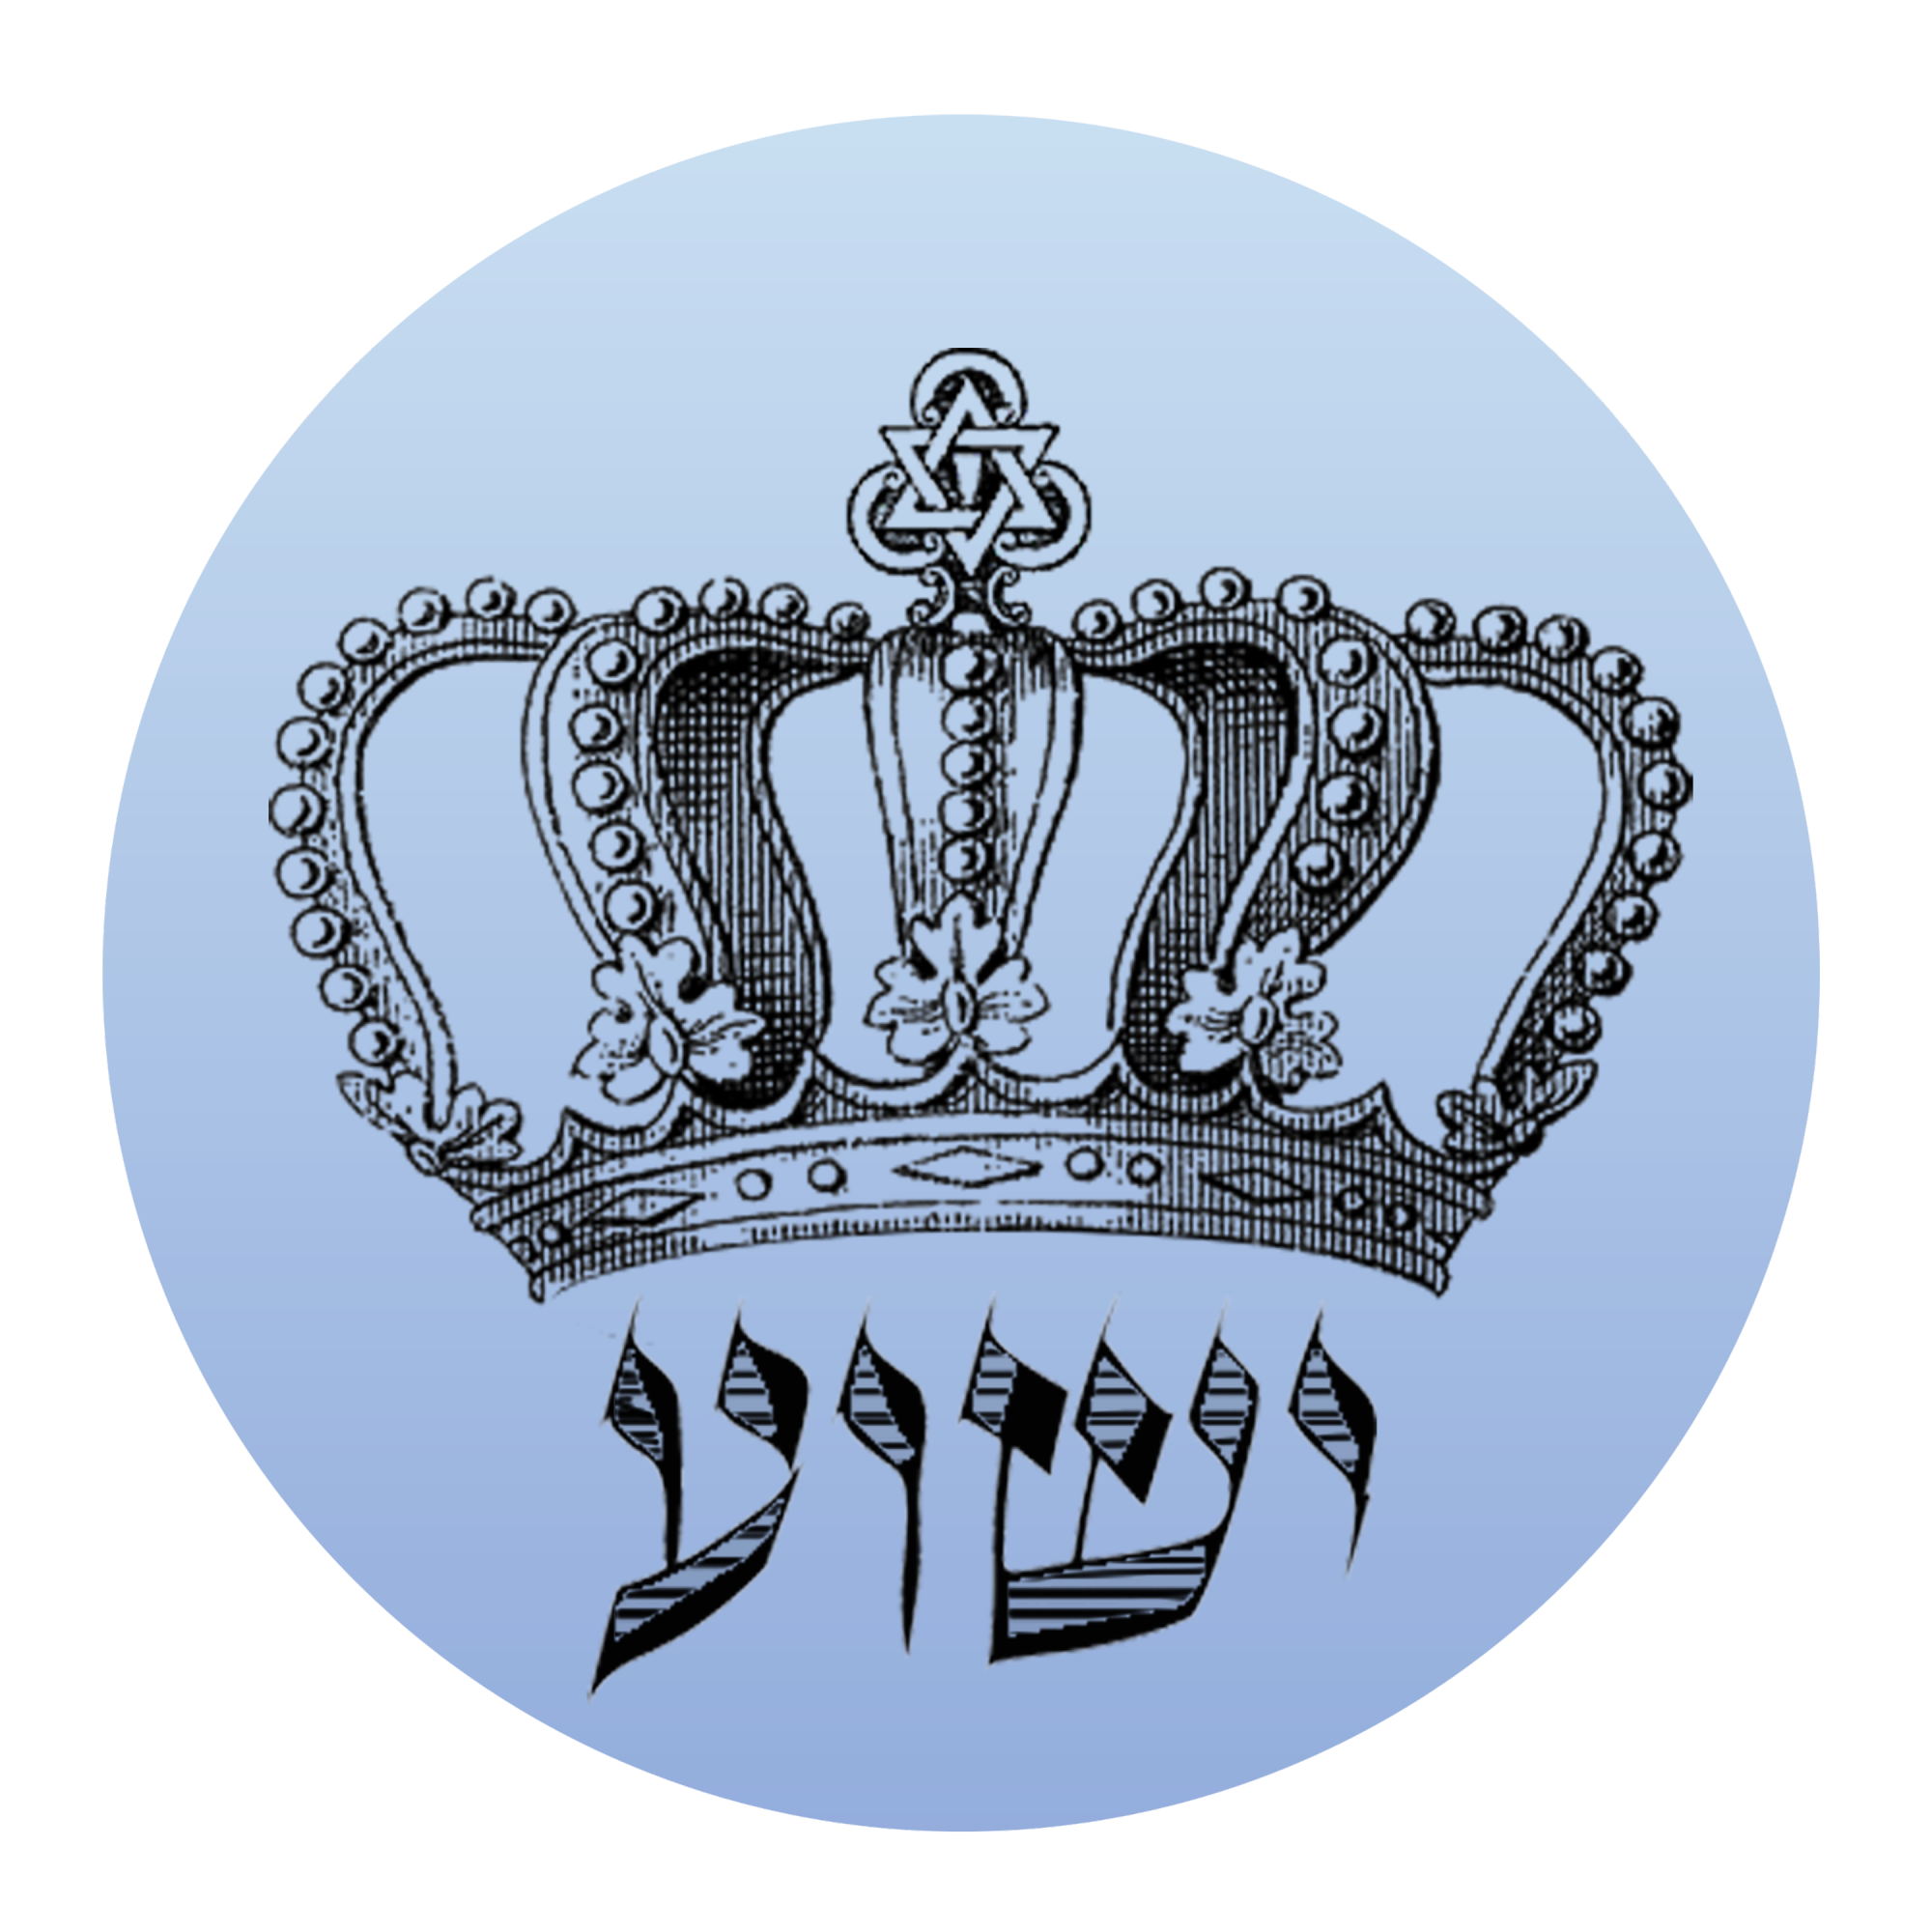 Jewish crown clipart graphic freeuse download Weekly Classes – Beth Yeshua Messianic Synagogue graphic freeuse download